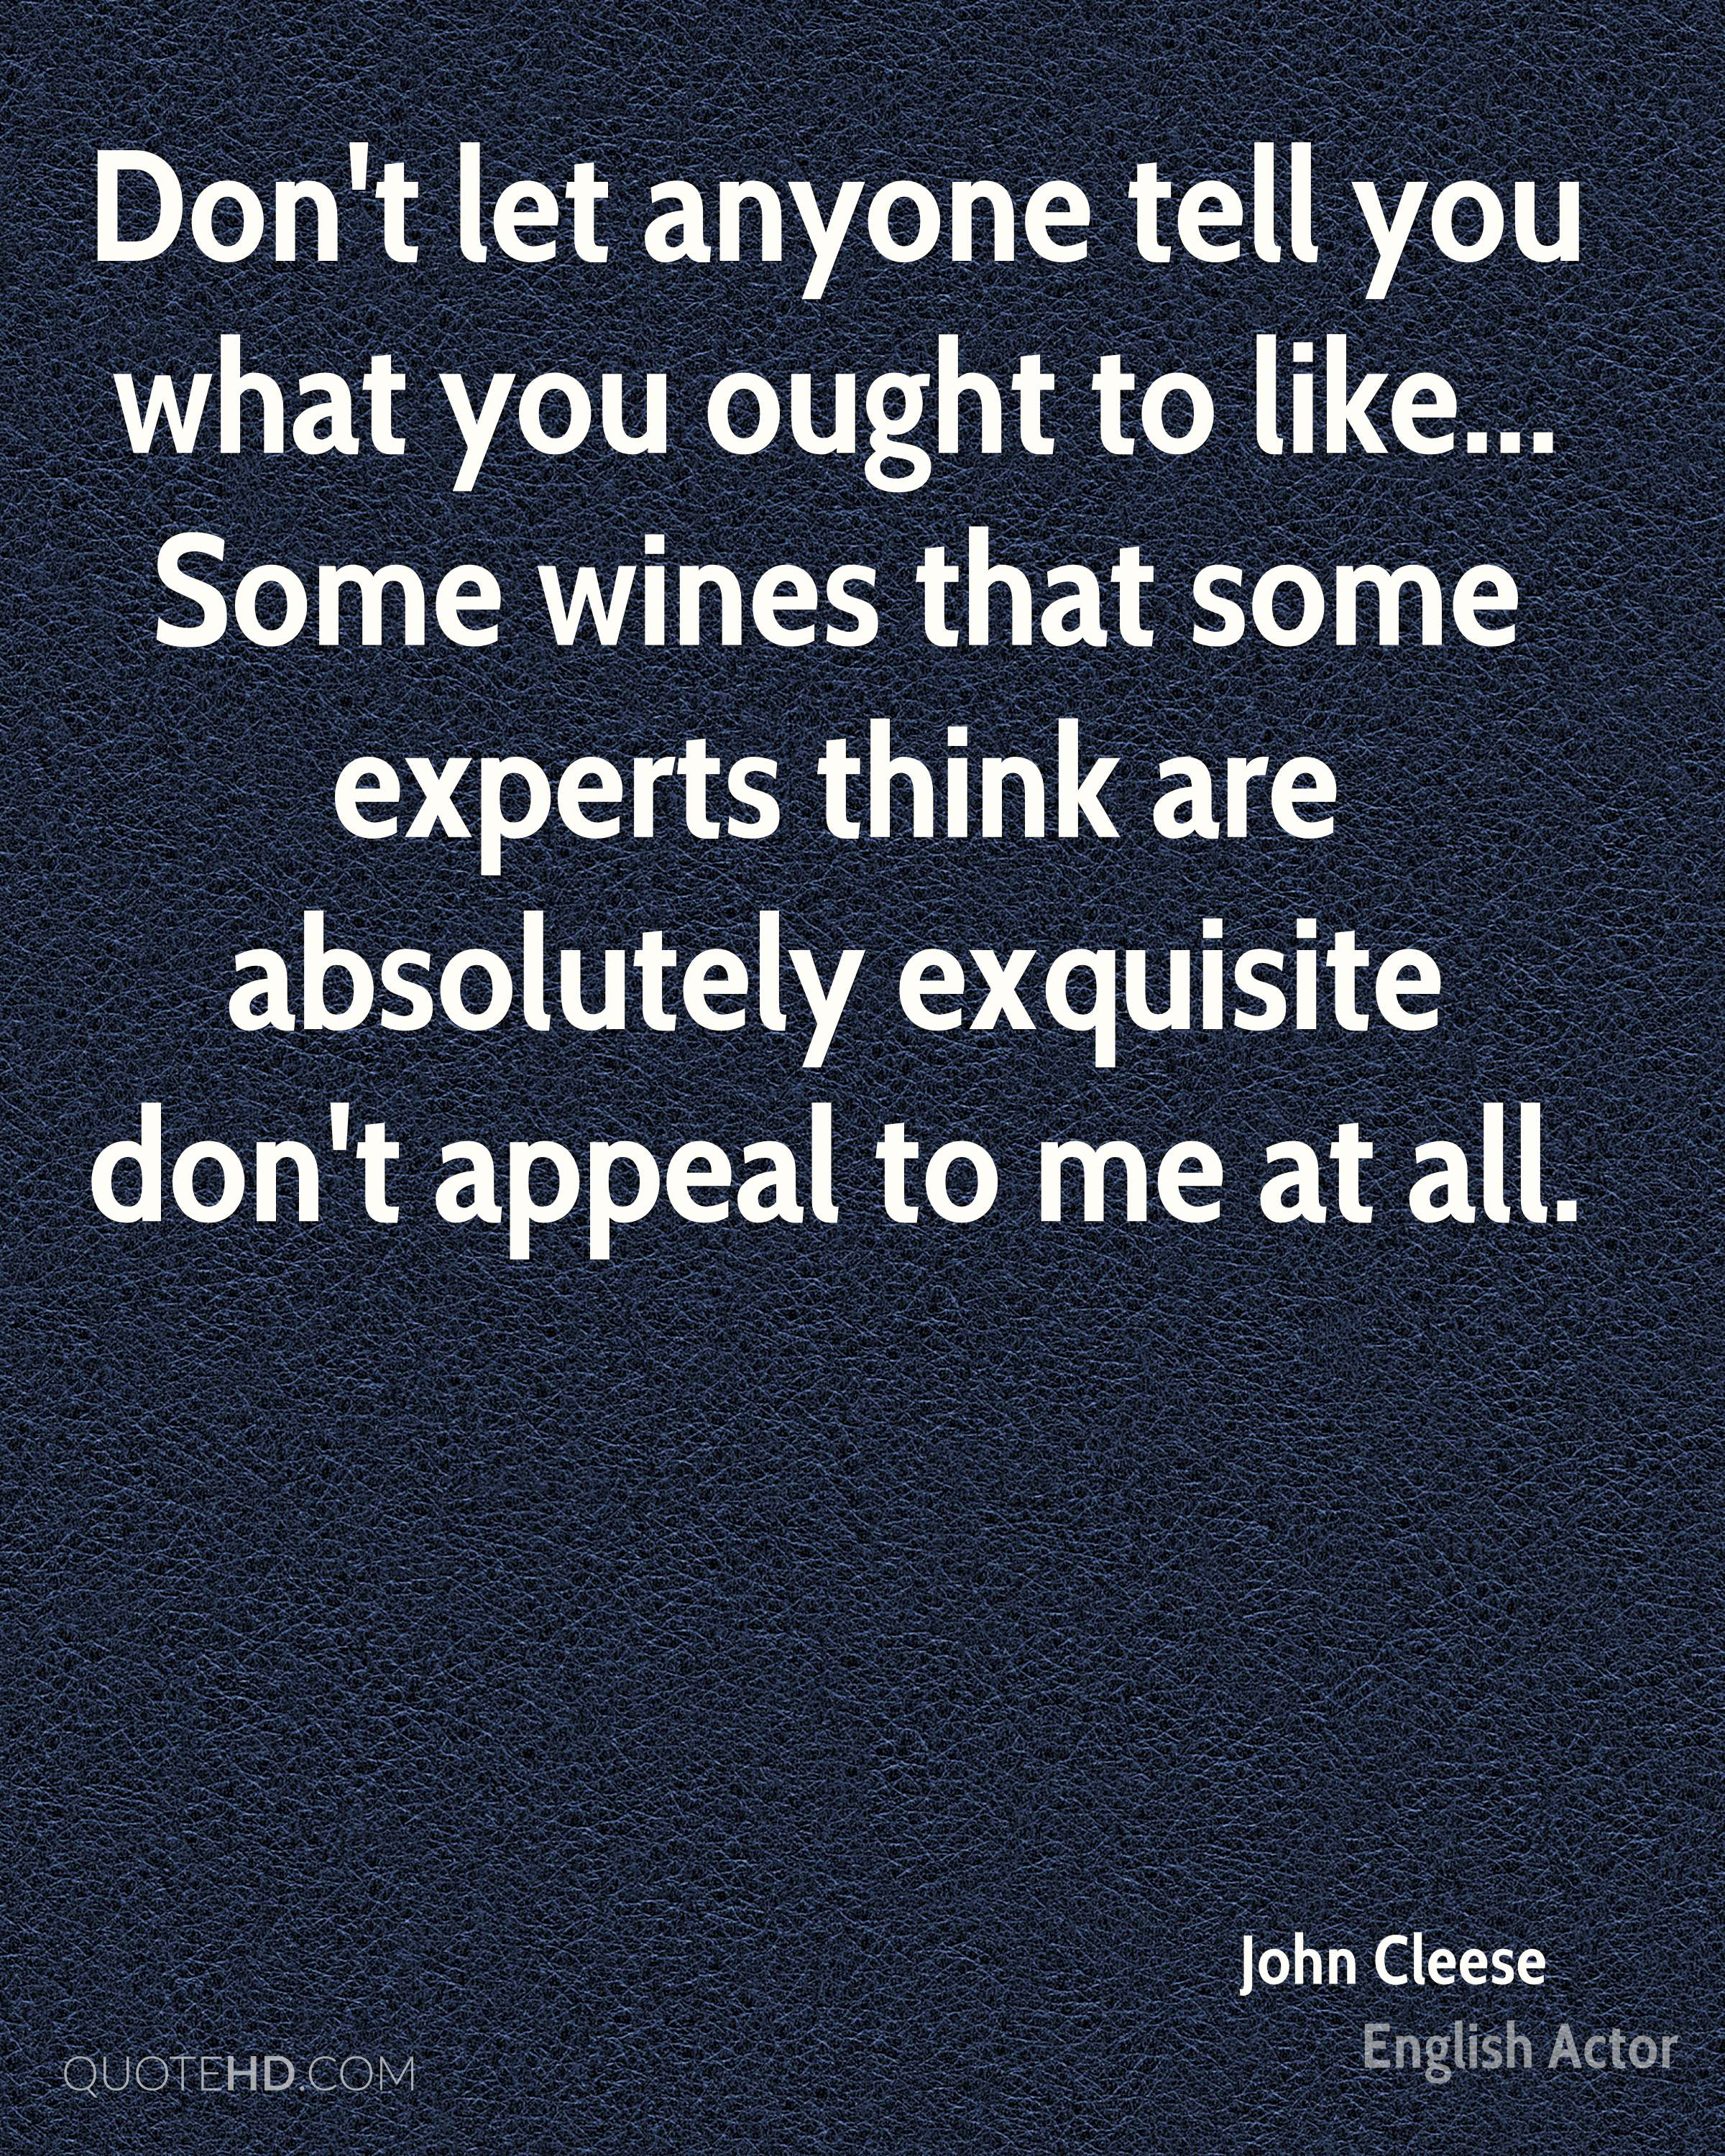 Don't let anyone tell you what you ought to like... Some wines that some experts think are absolutely exquisite don't appeal to me at all.